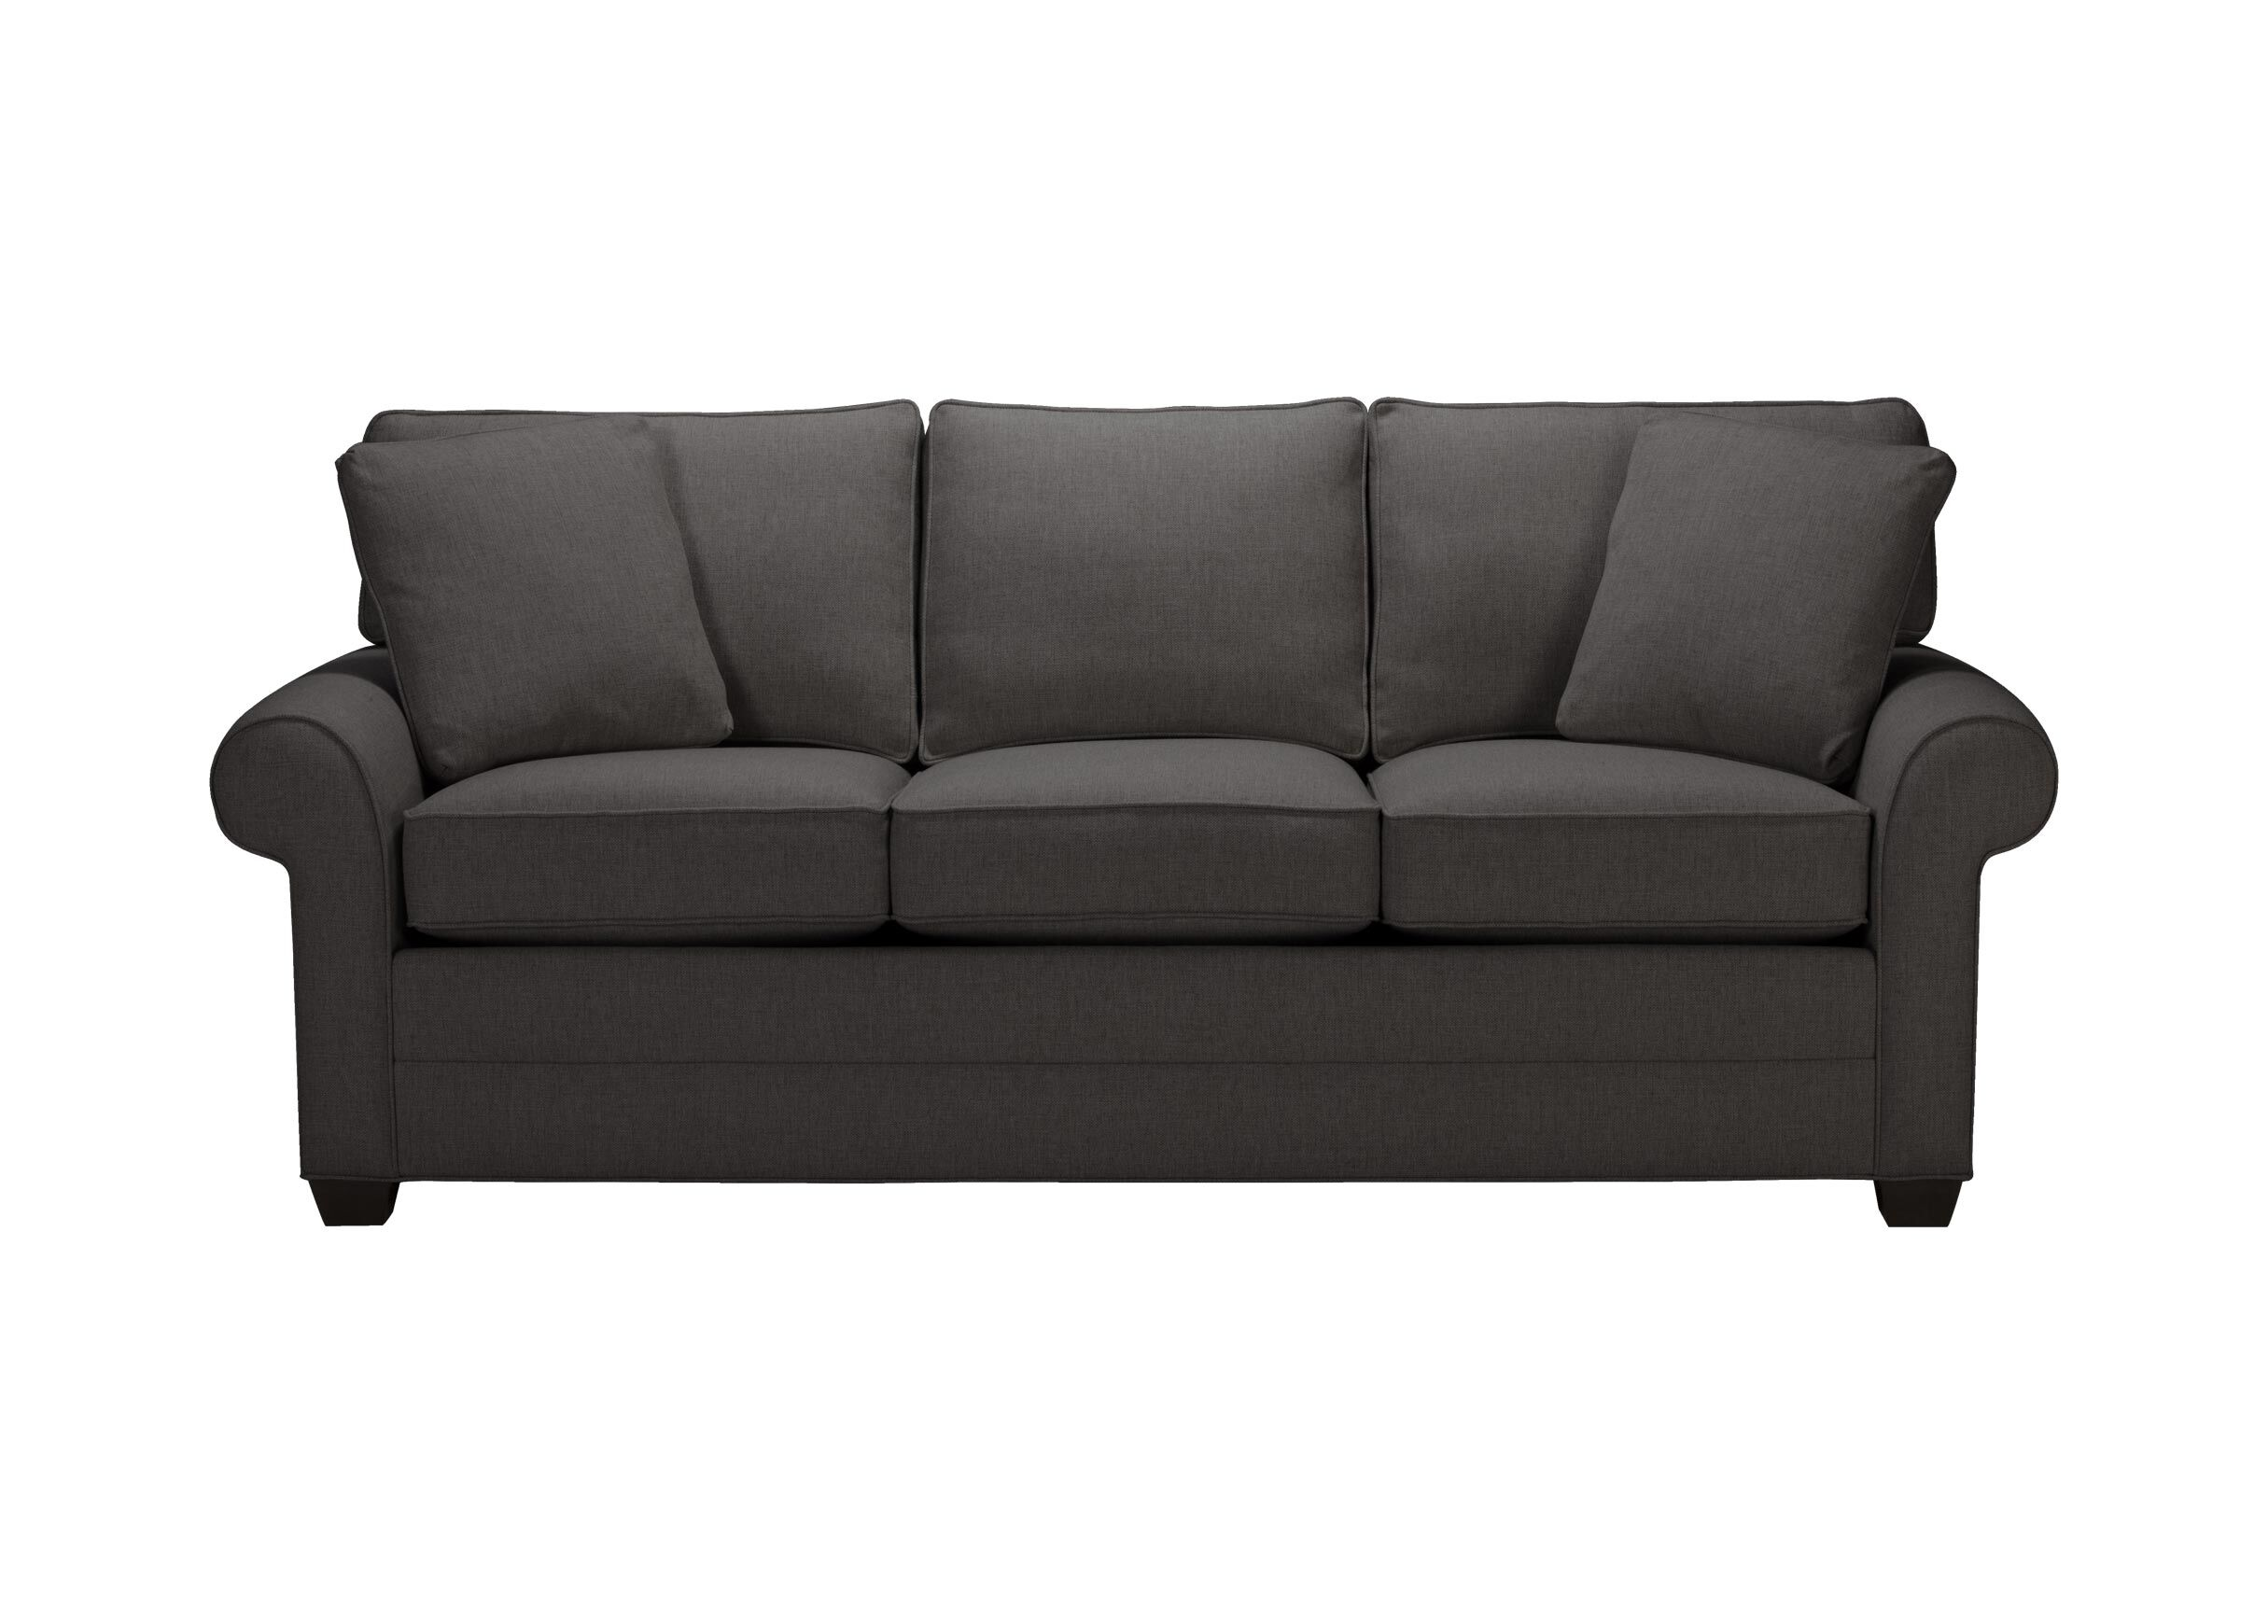 rolled arm sofa nz recliner chair singapore bennett roll quick ship sofas and loveseats